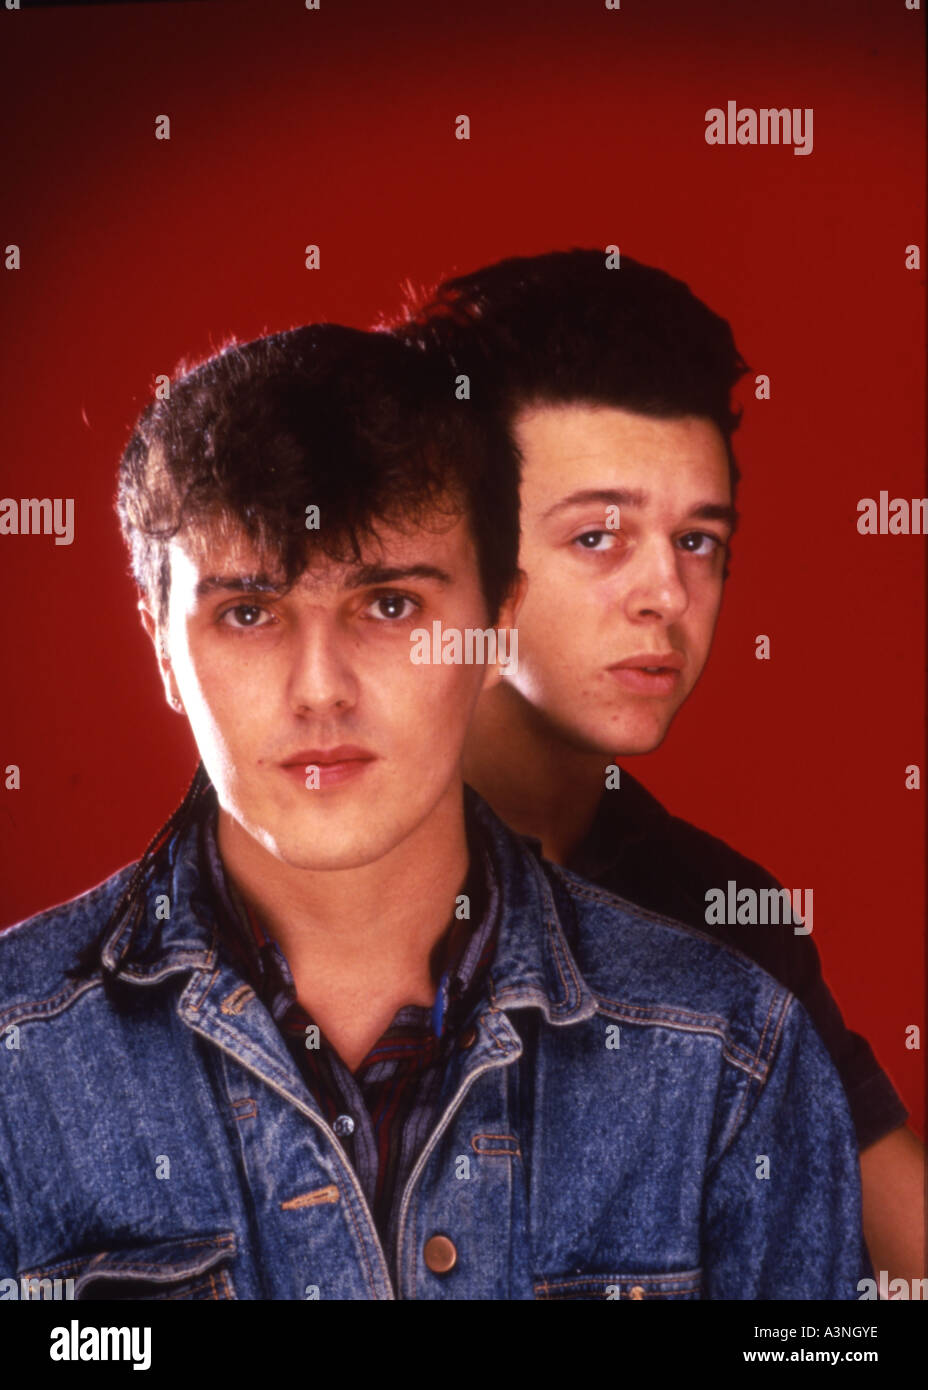 TEARS FOR FEARS UK 80s group with Curt Smith at left and Roland Orzabal - Stock Image